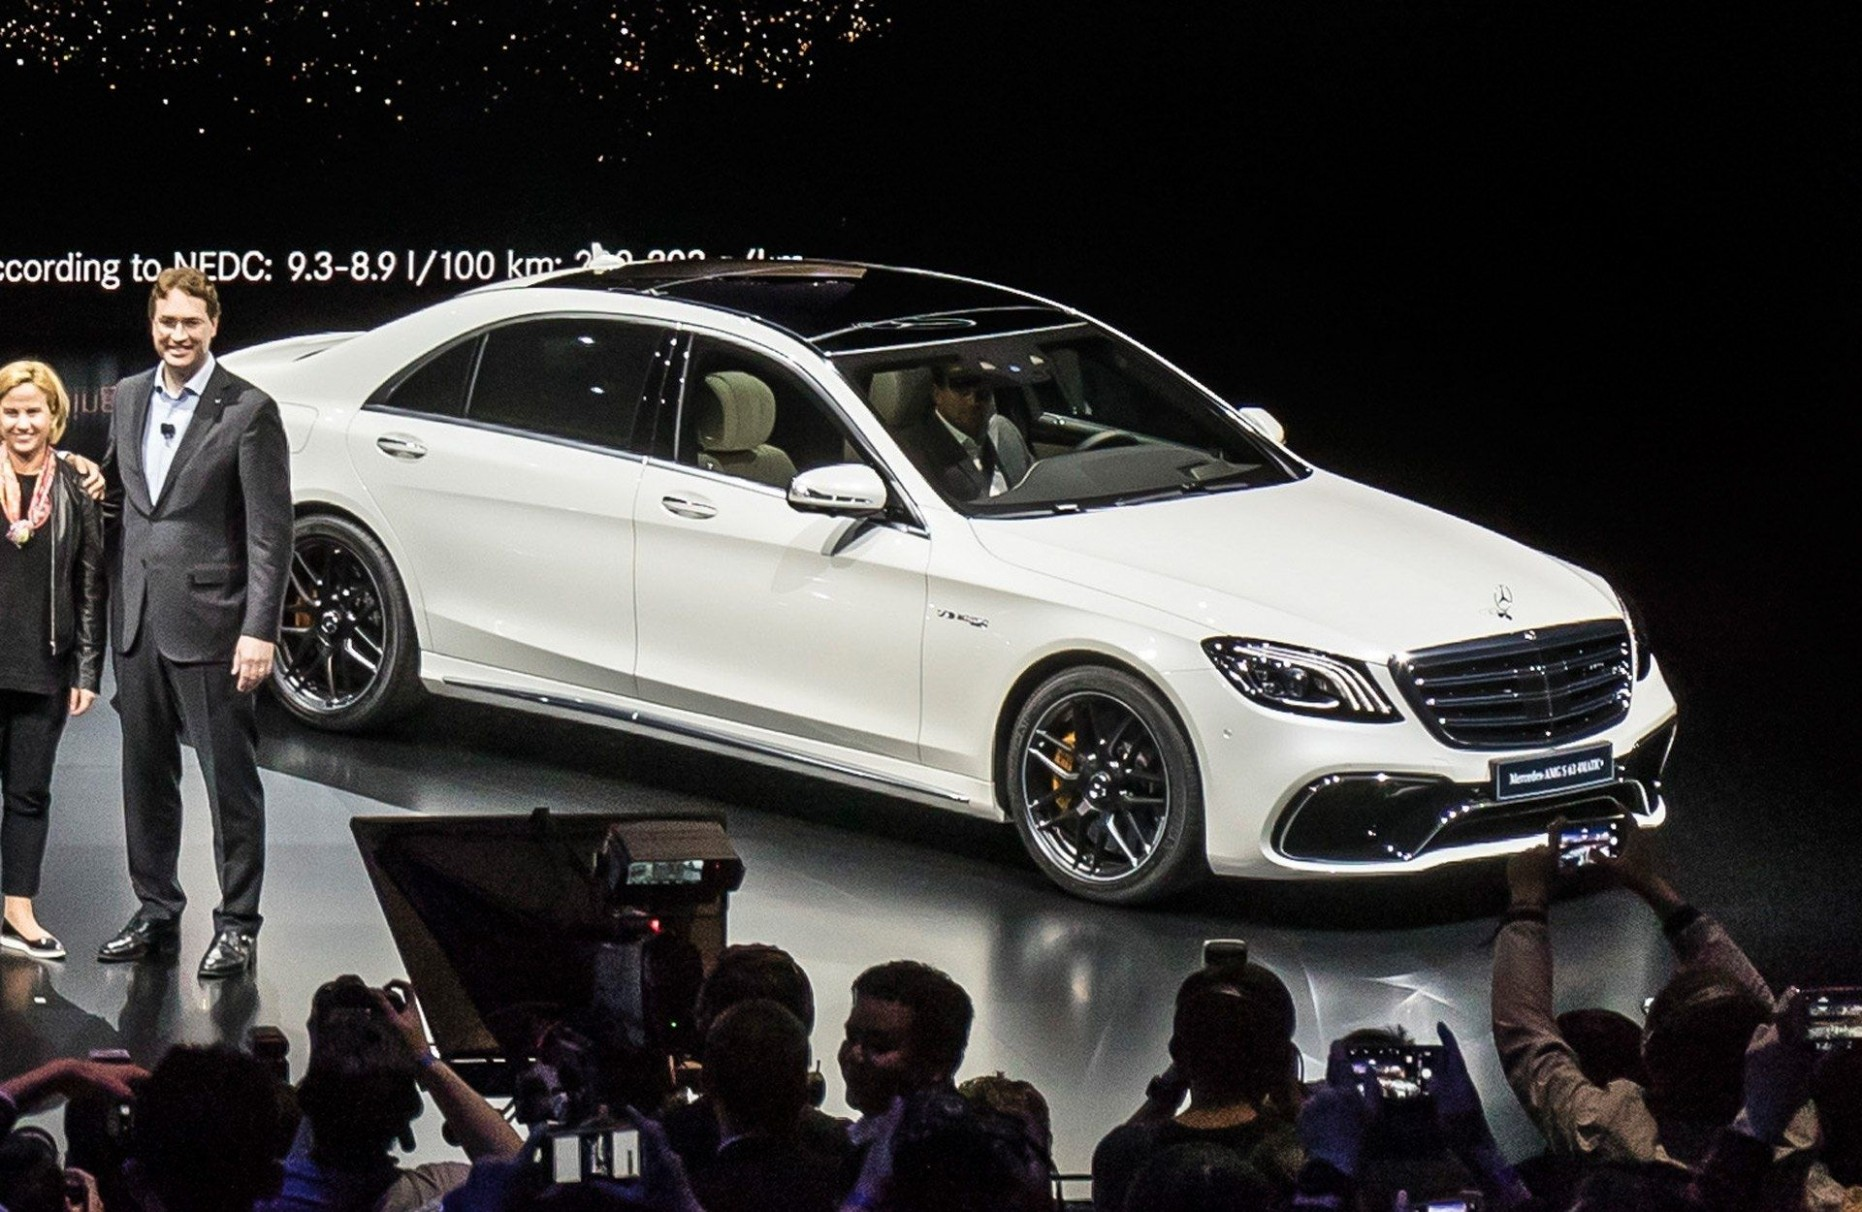 when will the 5 Mercedes S5 Amg look like Mercedes benz - 2020 mercedes s65 amg